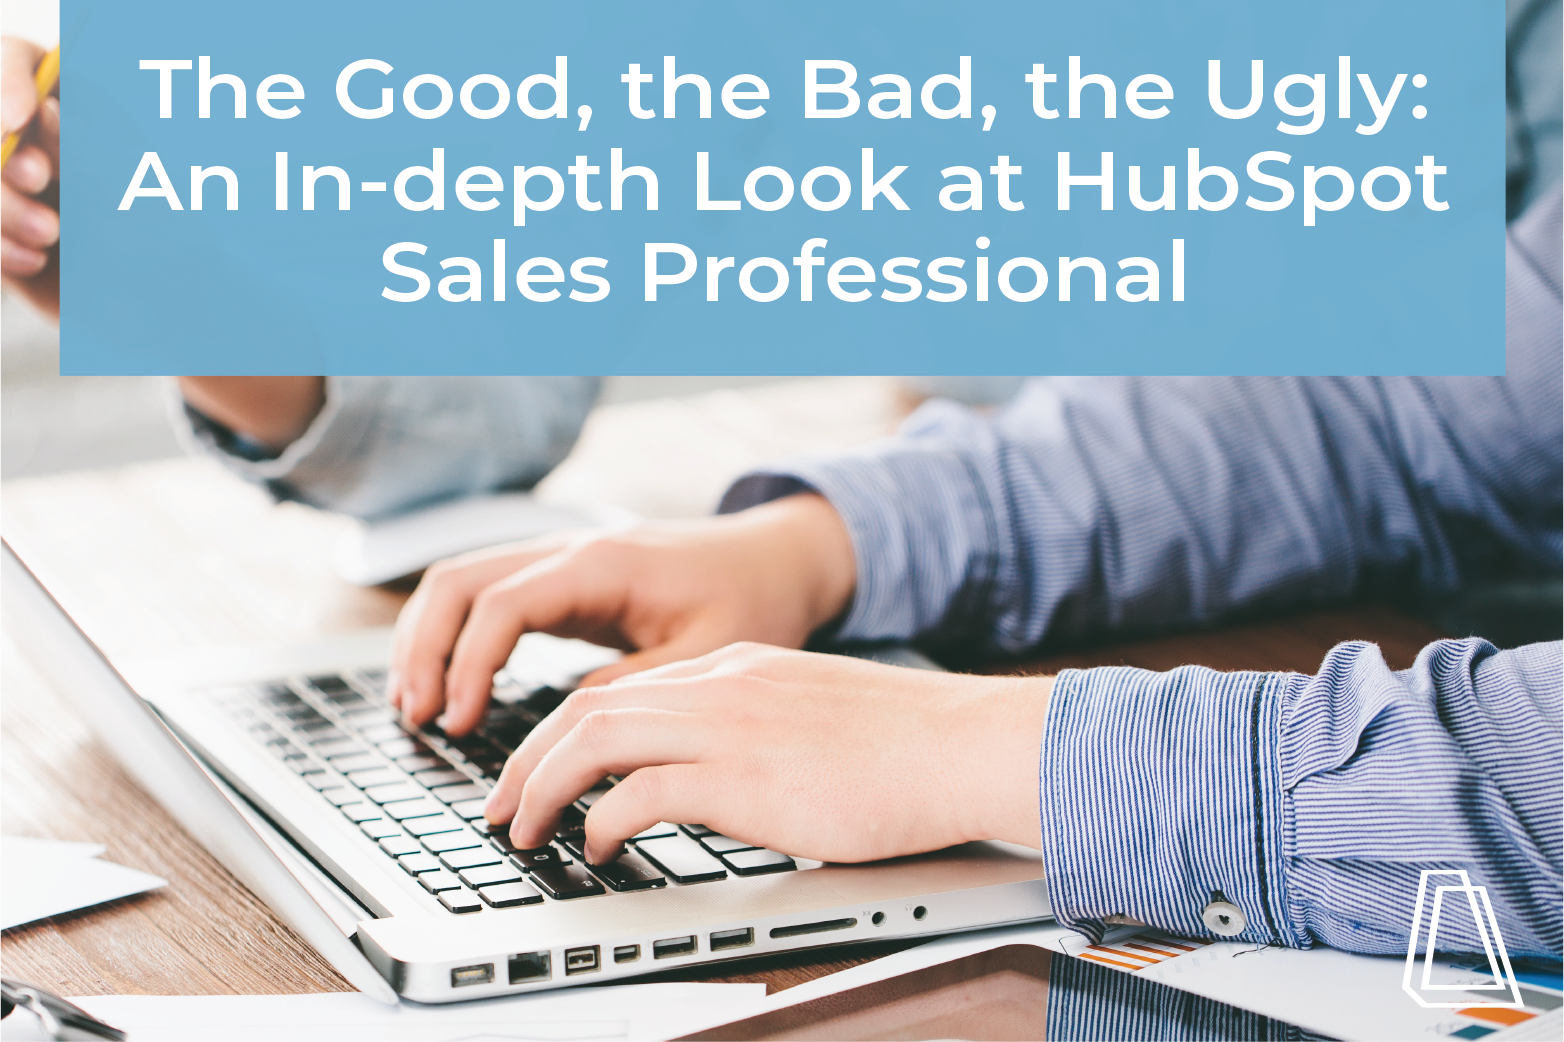 The good, the bad, the ugly: An in-depth Look at Hubspot Sales Professional